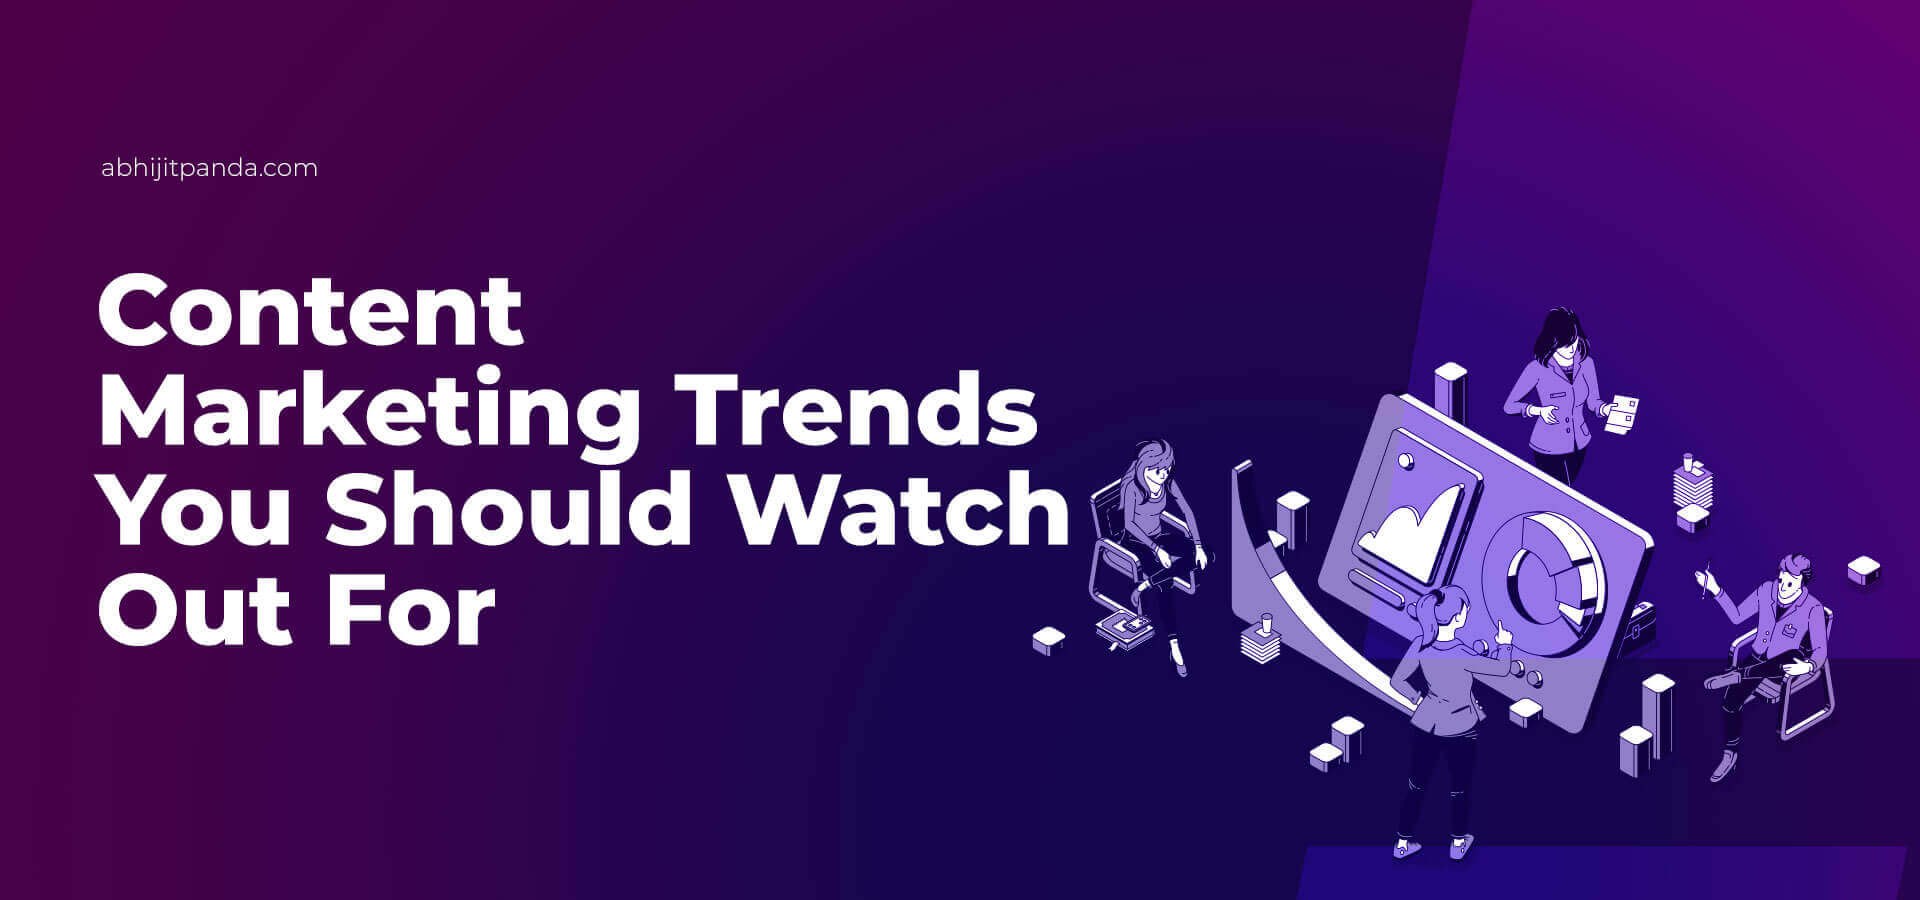 Content Marketing Trends You Should Watch out for